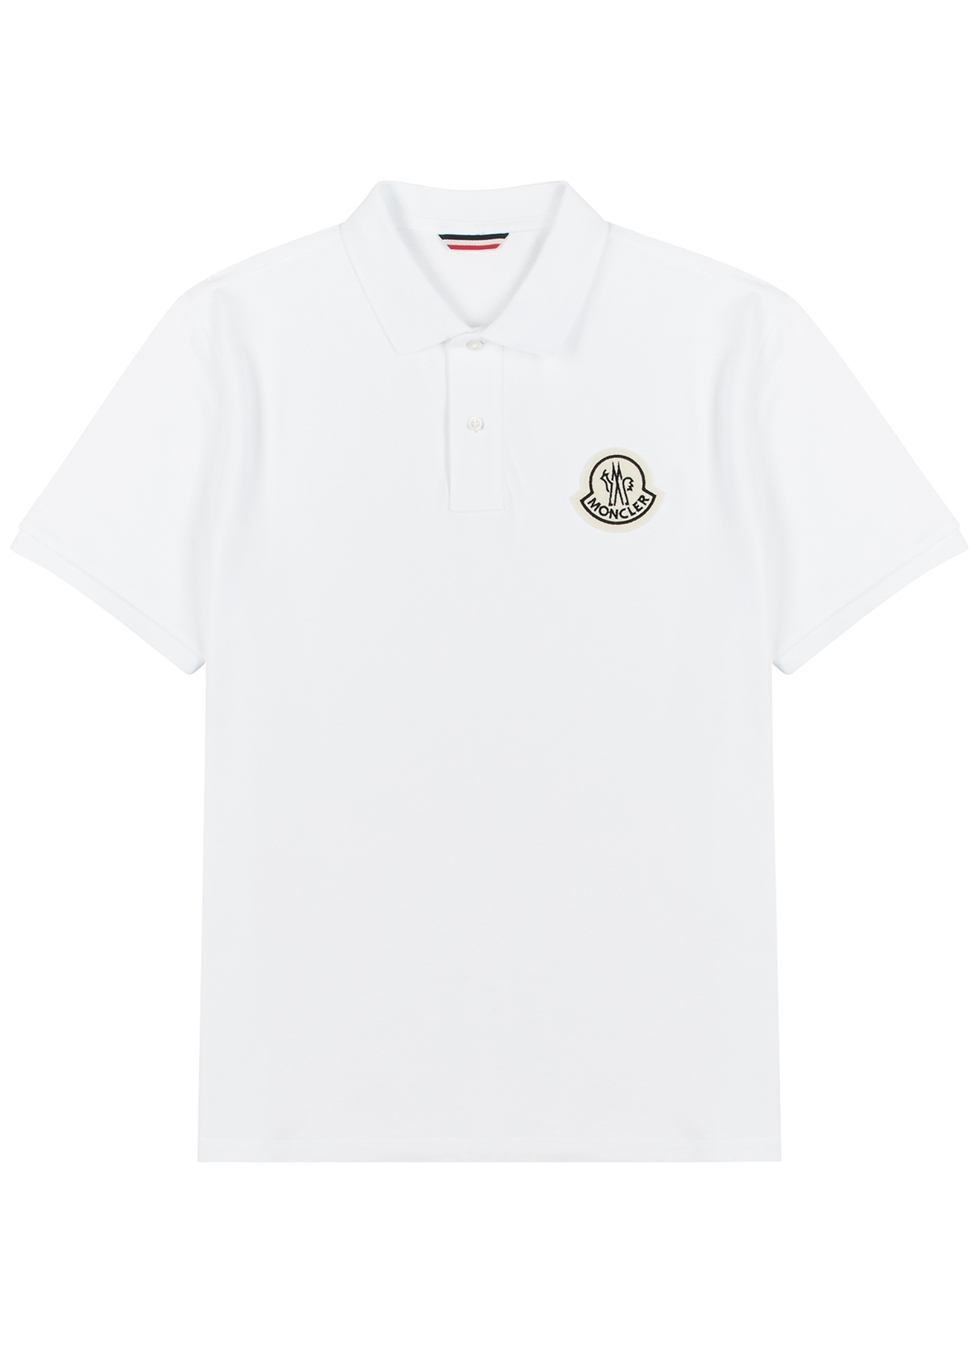 39ecafdf8 Men s Designer Polo Shirts - Harvey Nichols